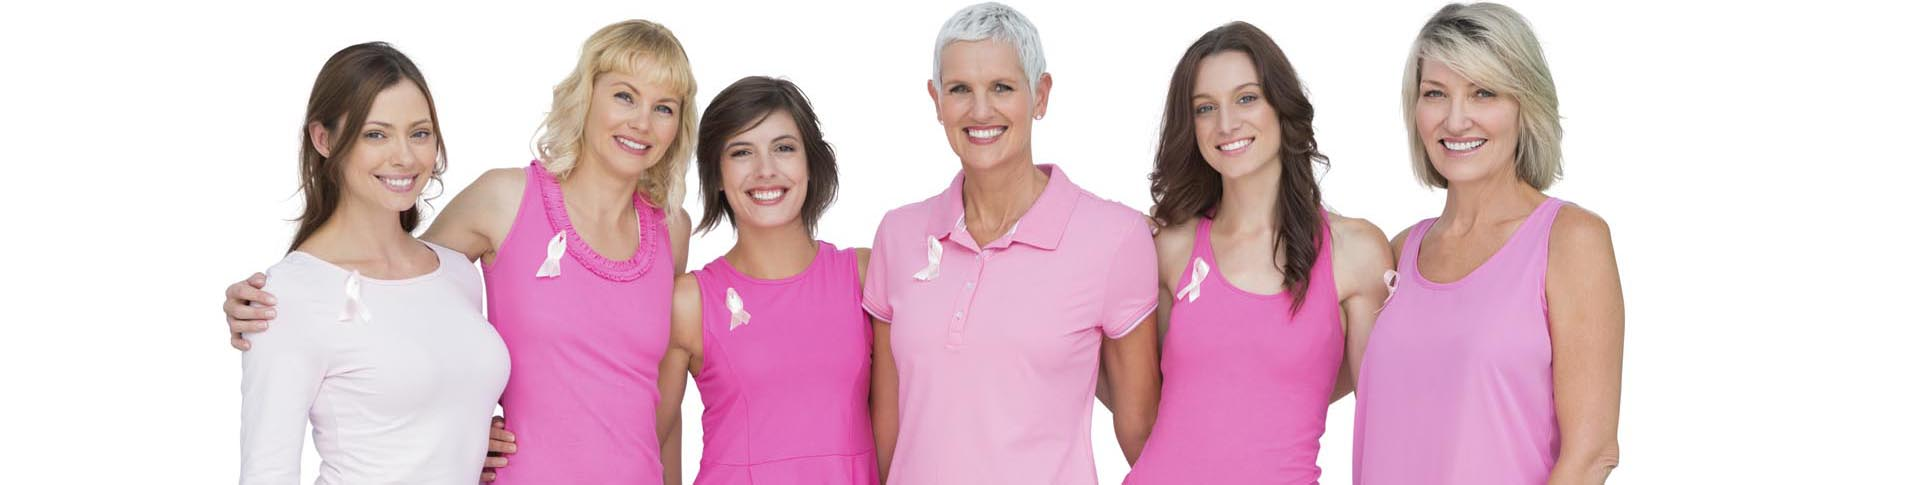 Smiling women wearing pink for breast cancer awareness on white background